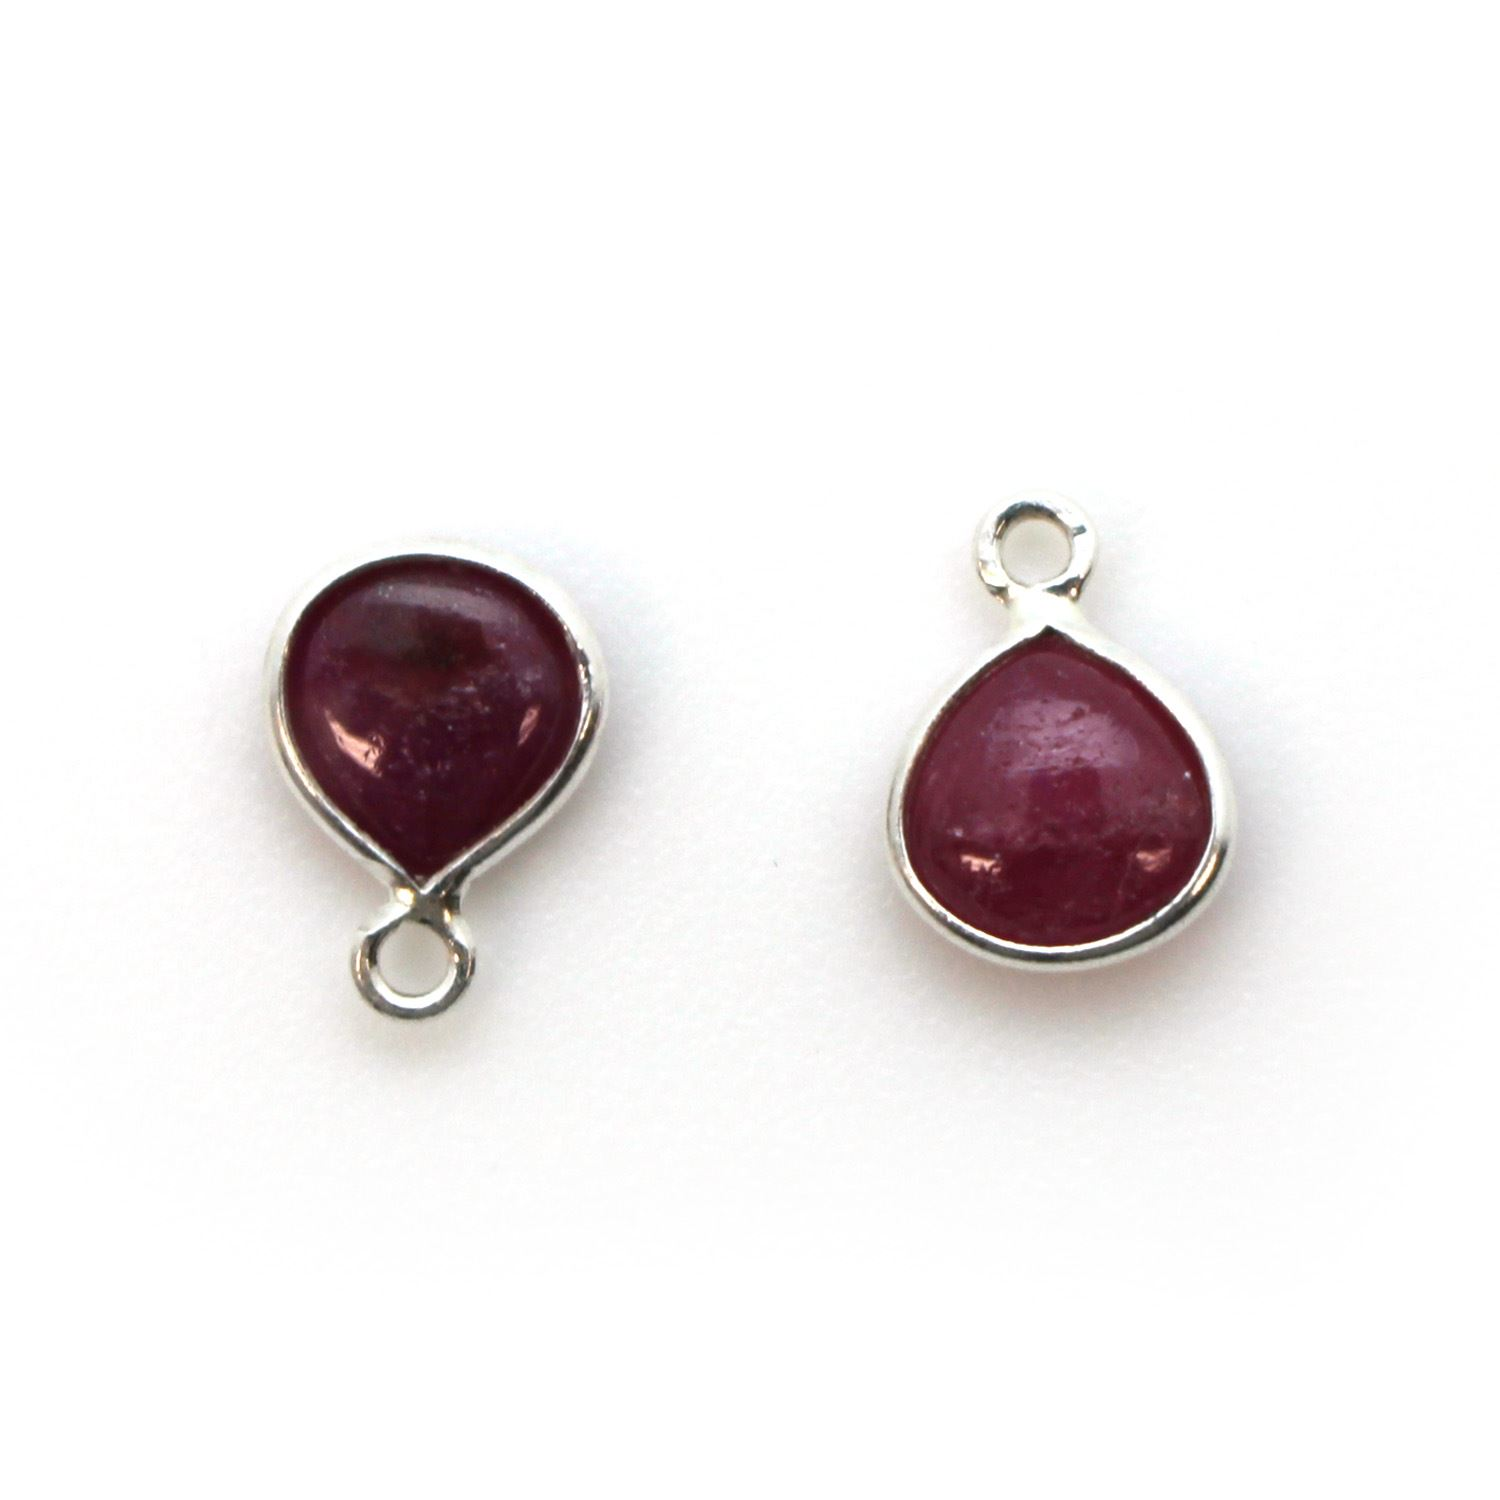 Bezel Charm Pendant - Sterling Silver Charm - Natural Ruby - Tiny Heart Shape -7mm